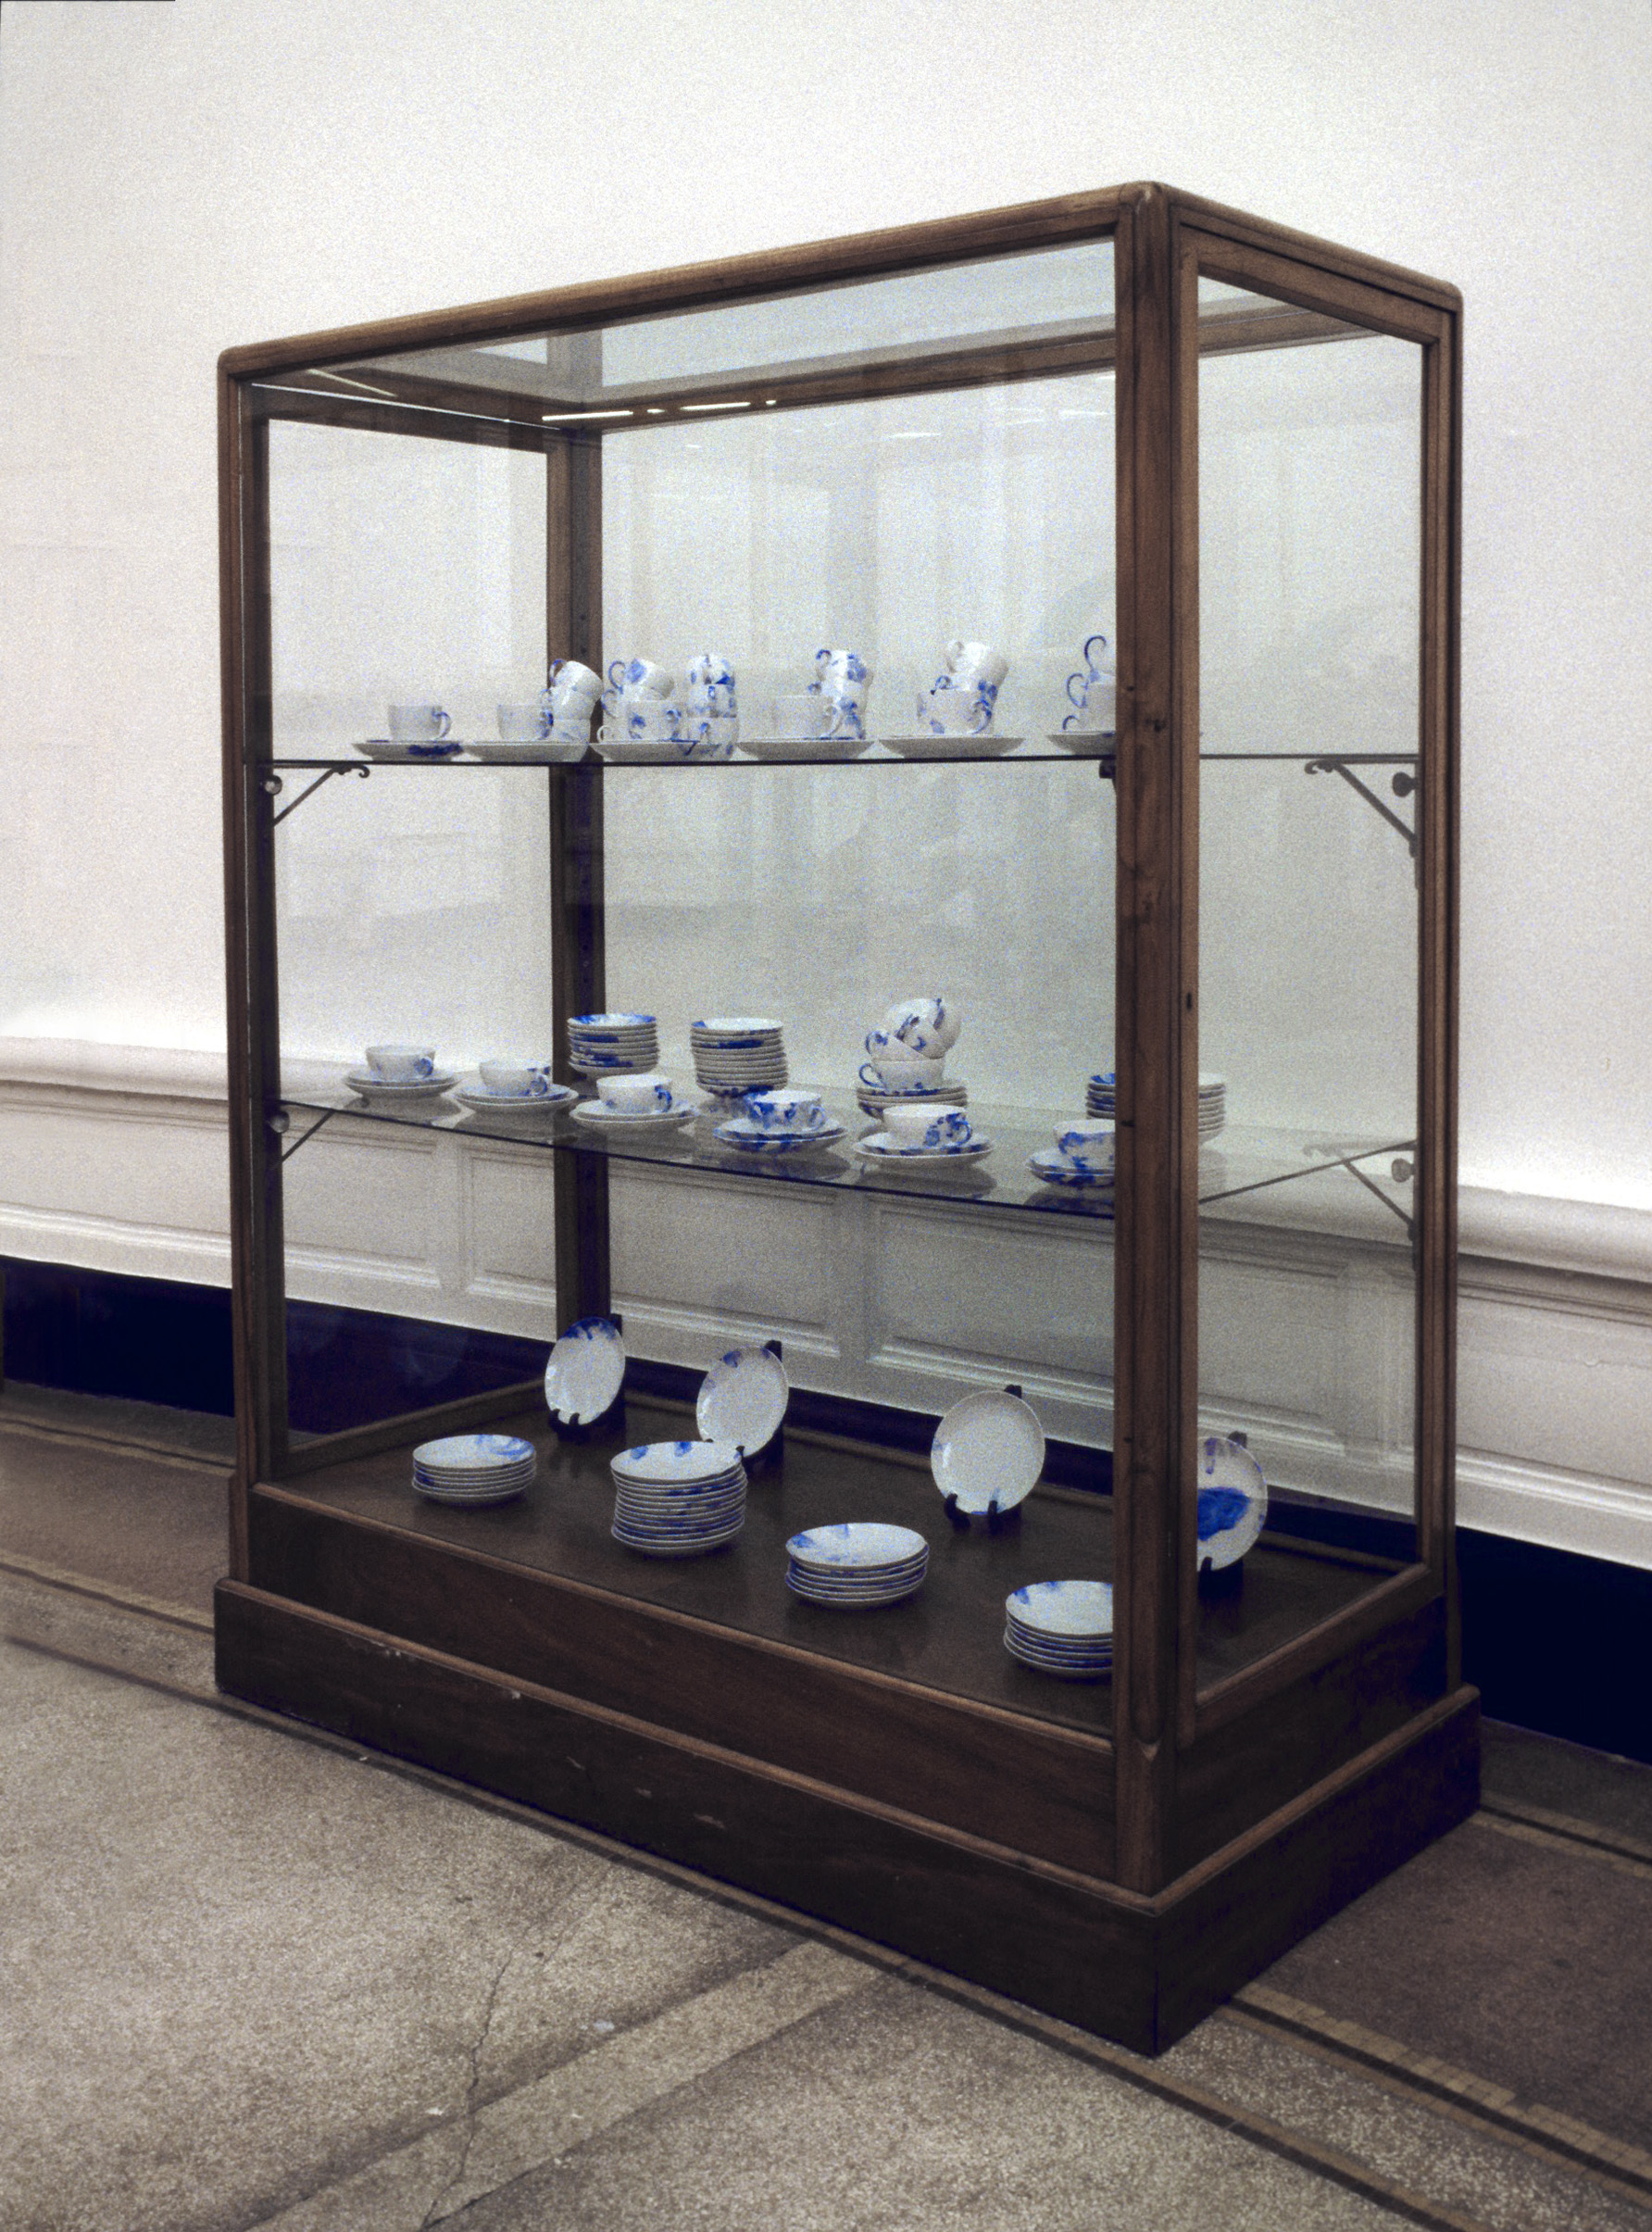 Porcelain Painting 1994, Gent, Extra Muros (This is the show and the show Is many things)